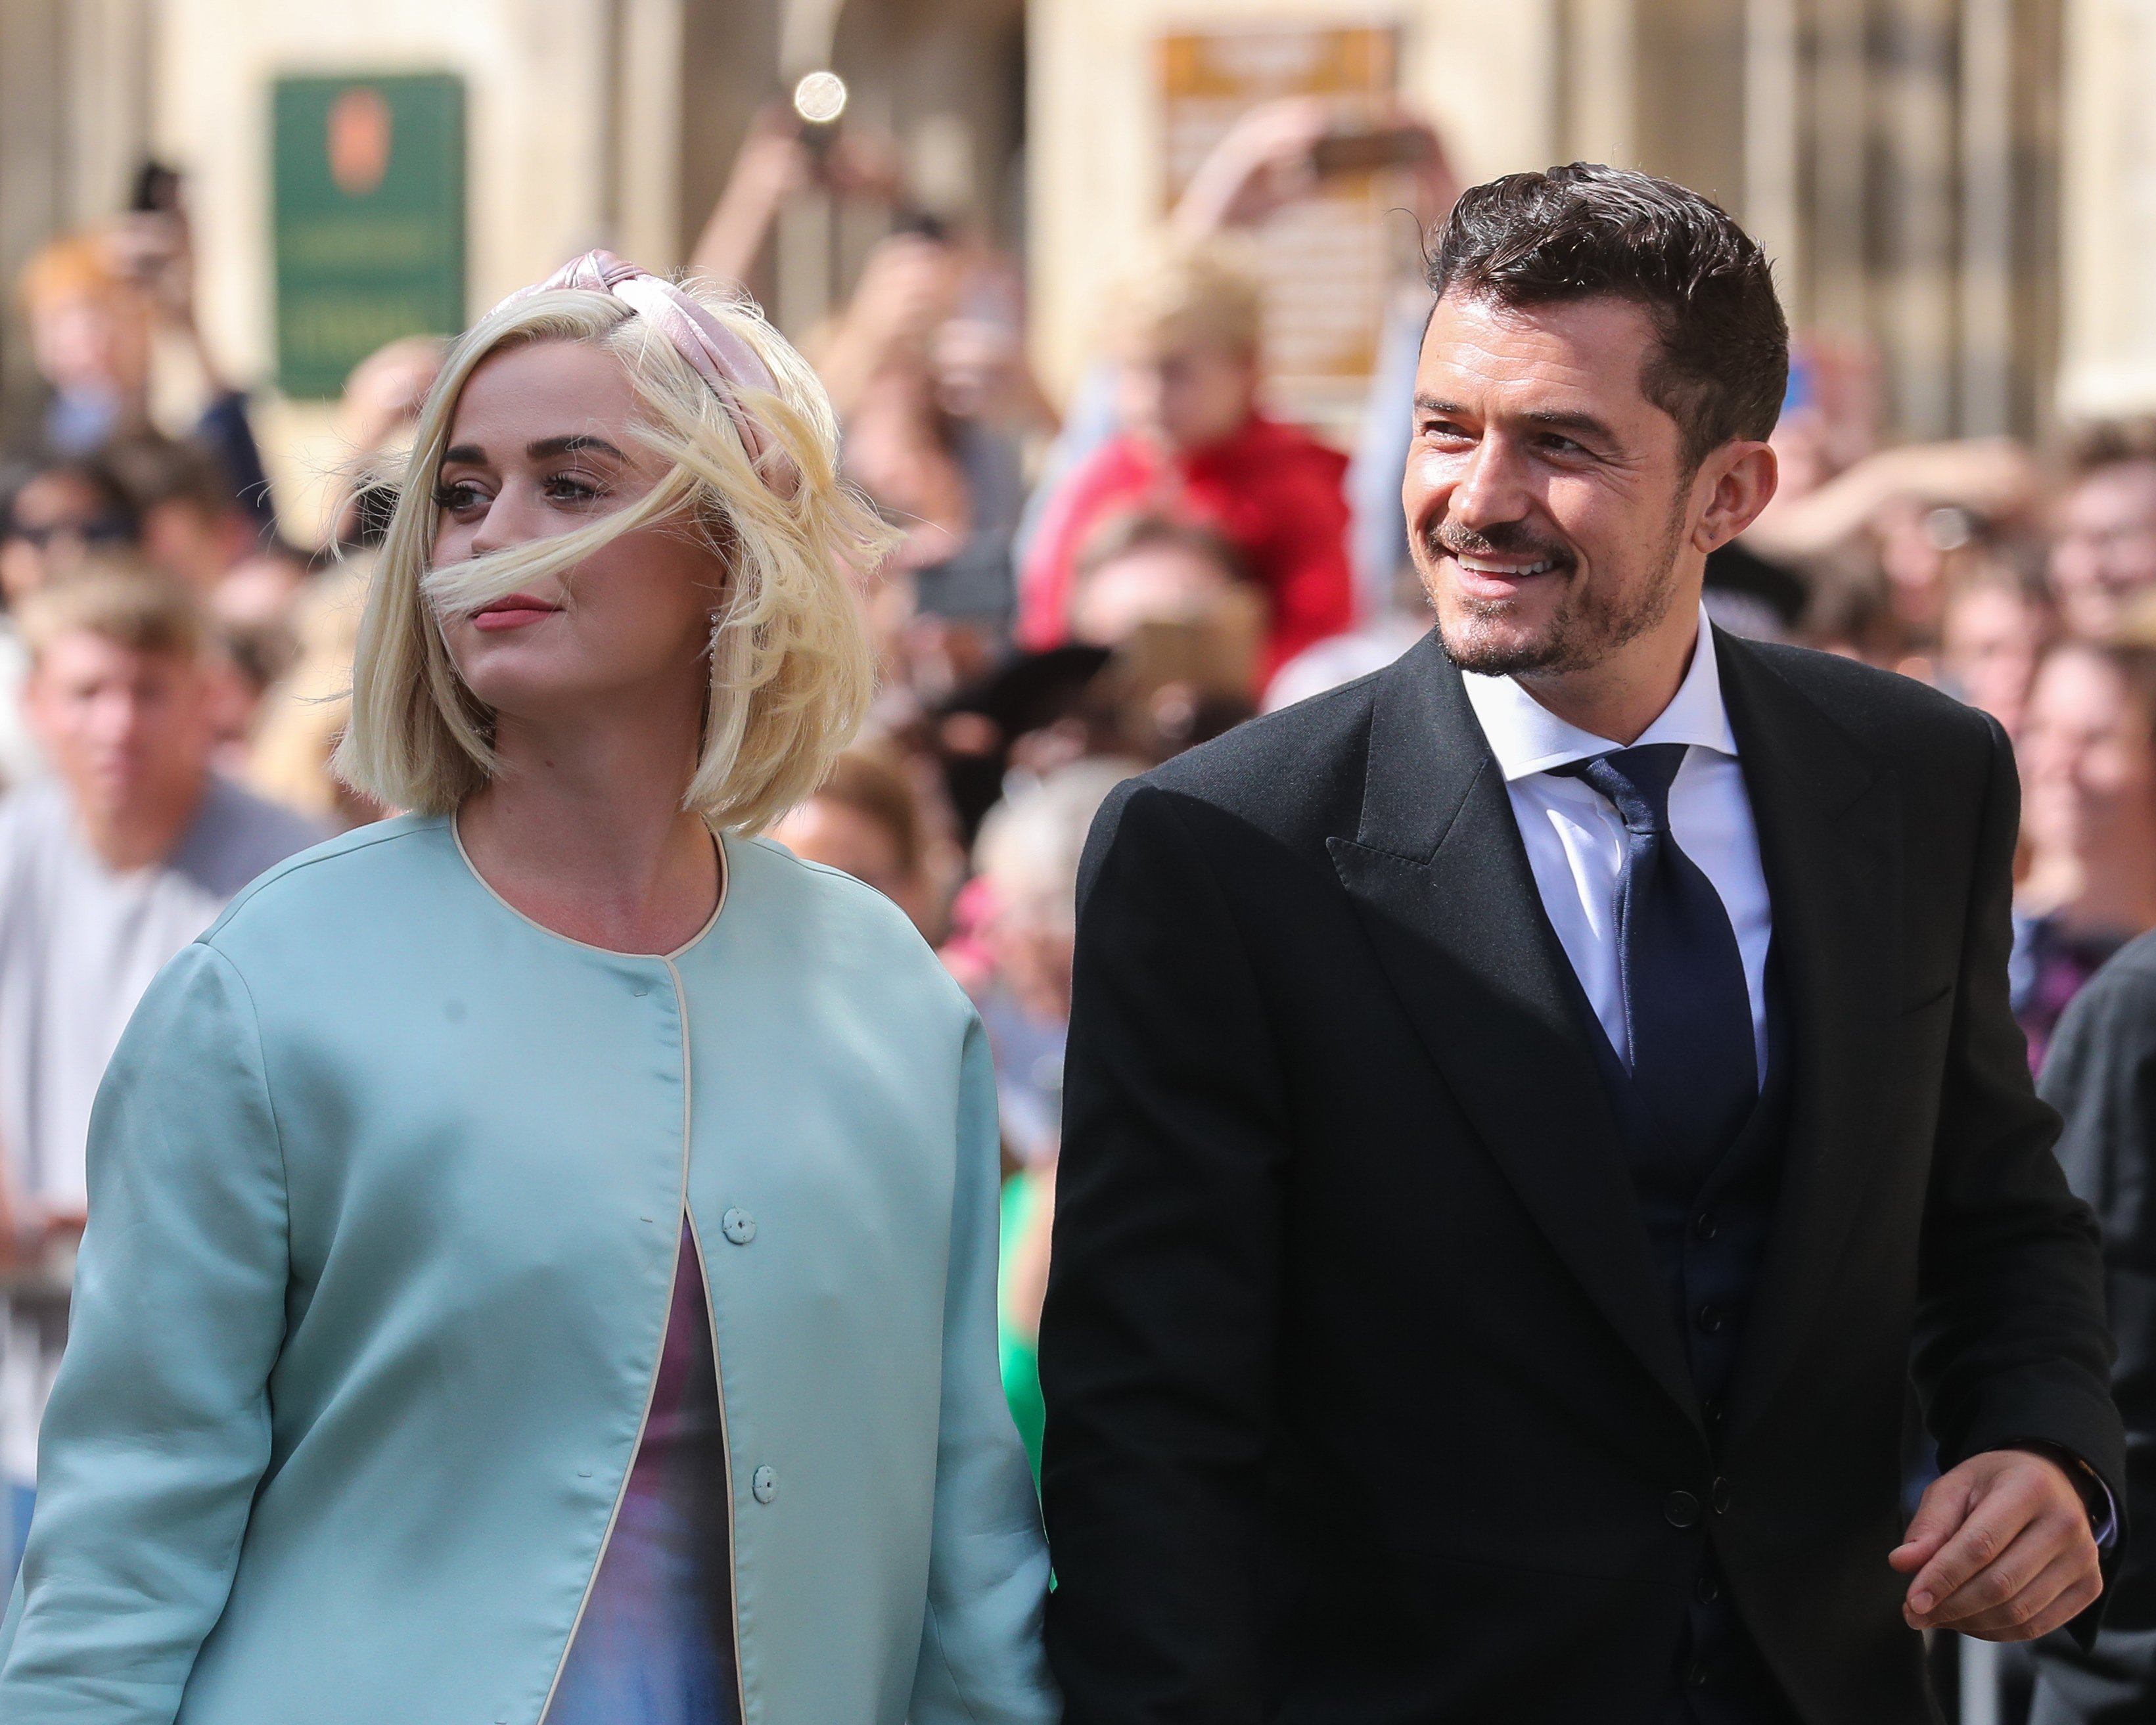 Katy Perry and Orlando Bloom seen at the wedding of Ellie Goulding and Caspar Jopling on August 31, 2019, in York, England. | Source: Getty Images.